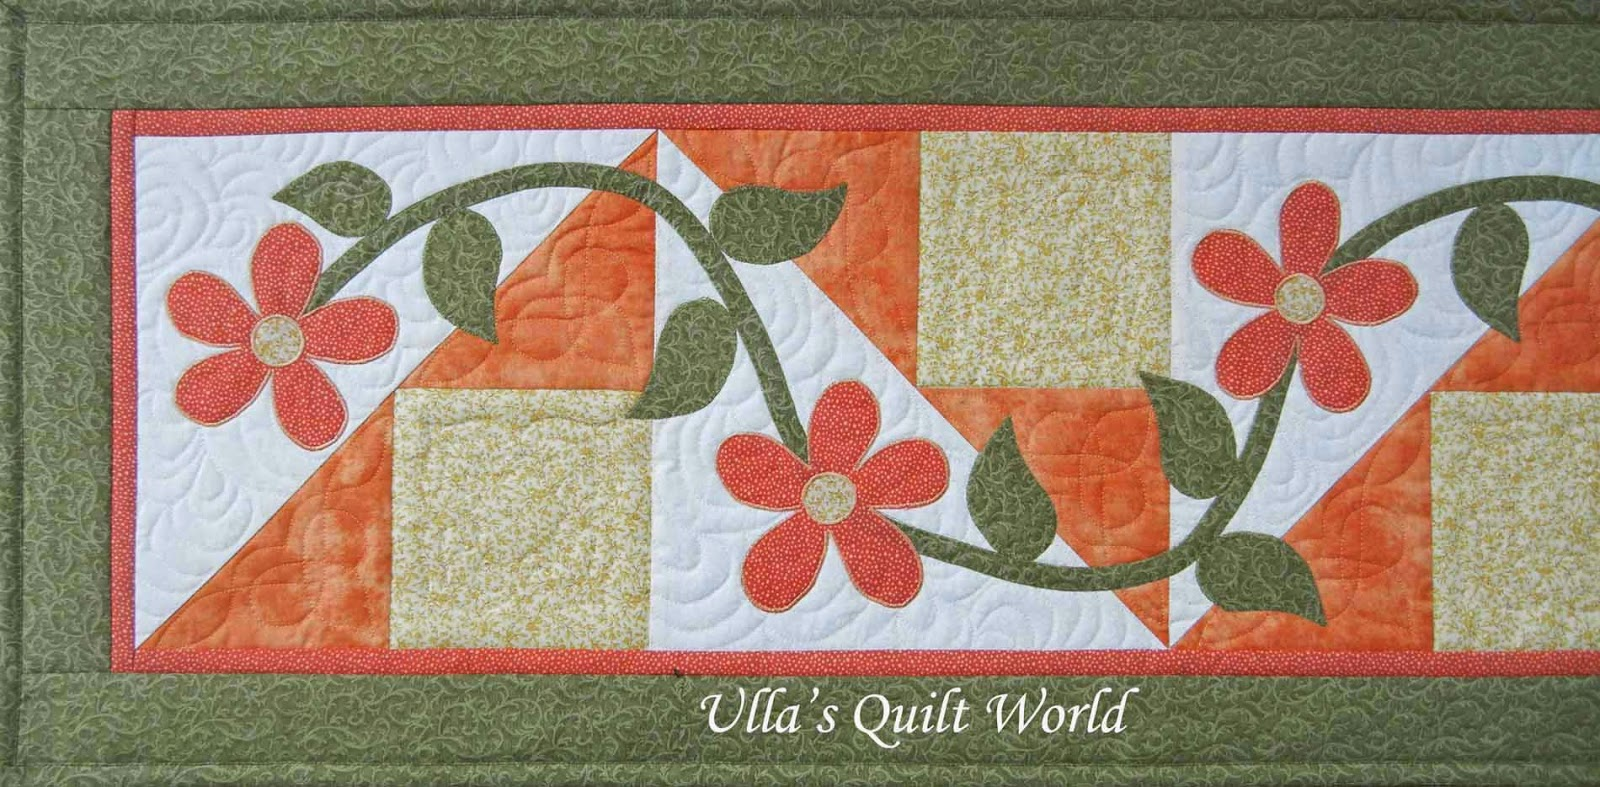 Ulla's Quilt World: Table runner quilt with flowers : table runners quilted - Adamdwight.com